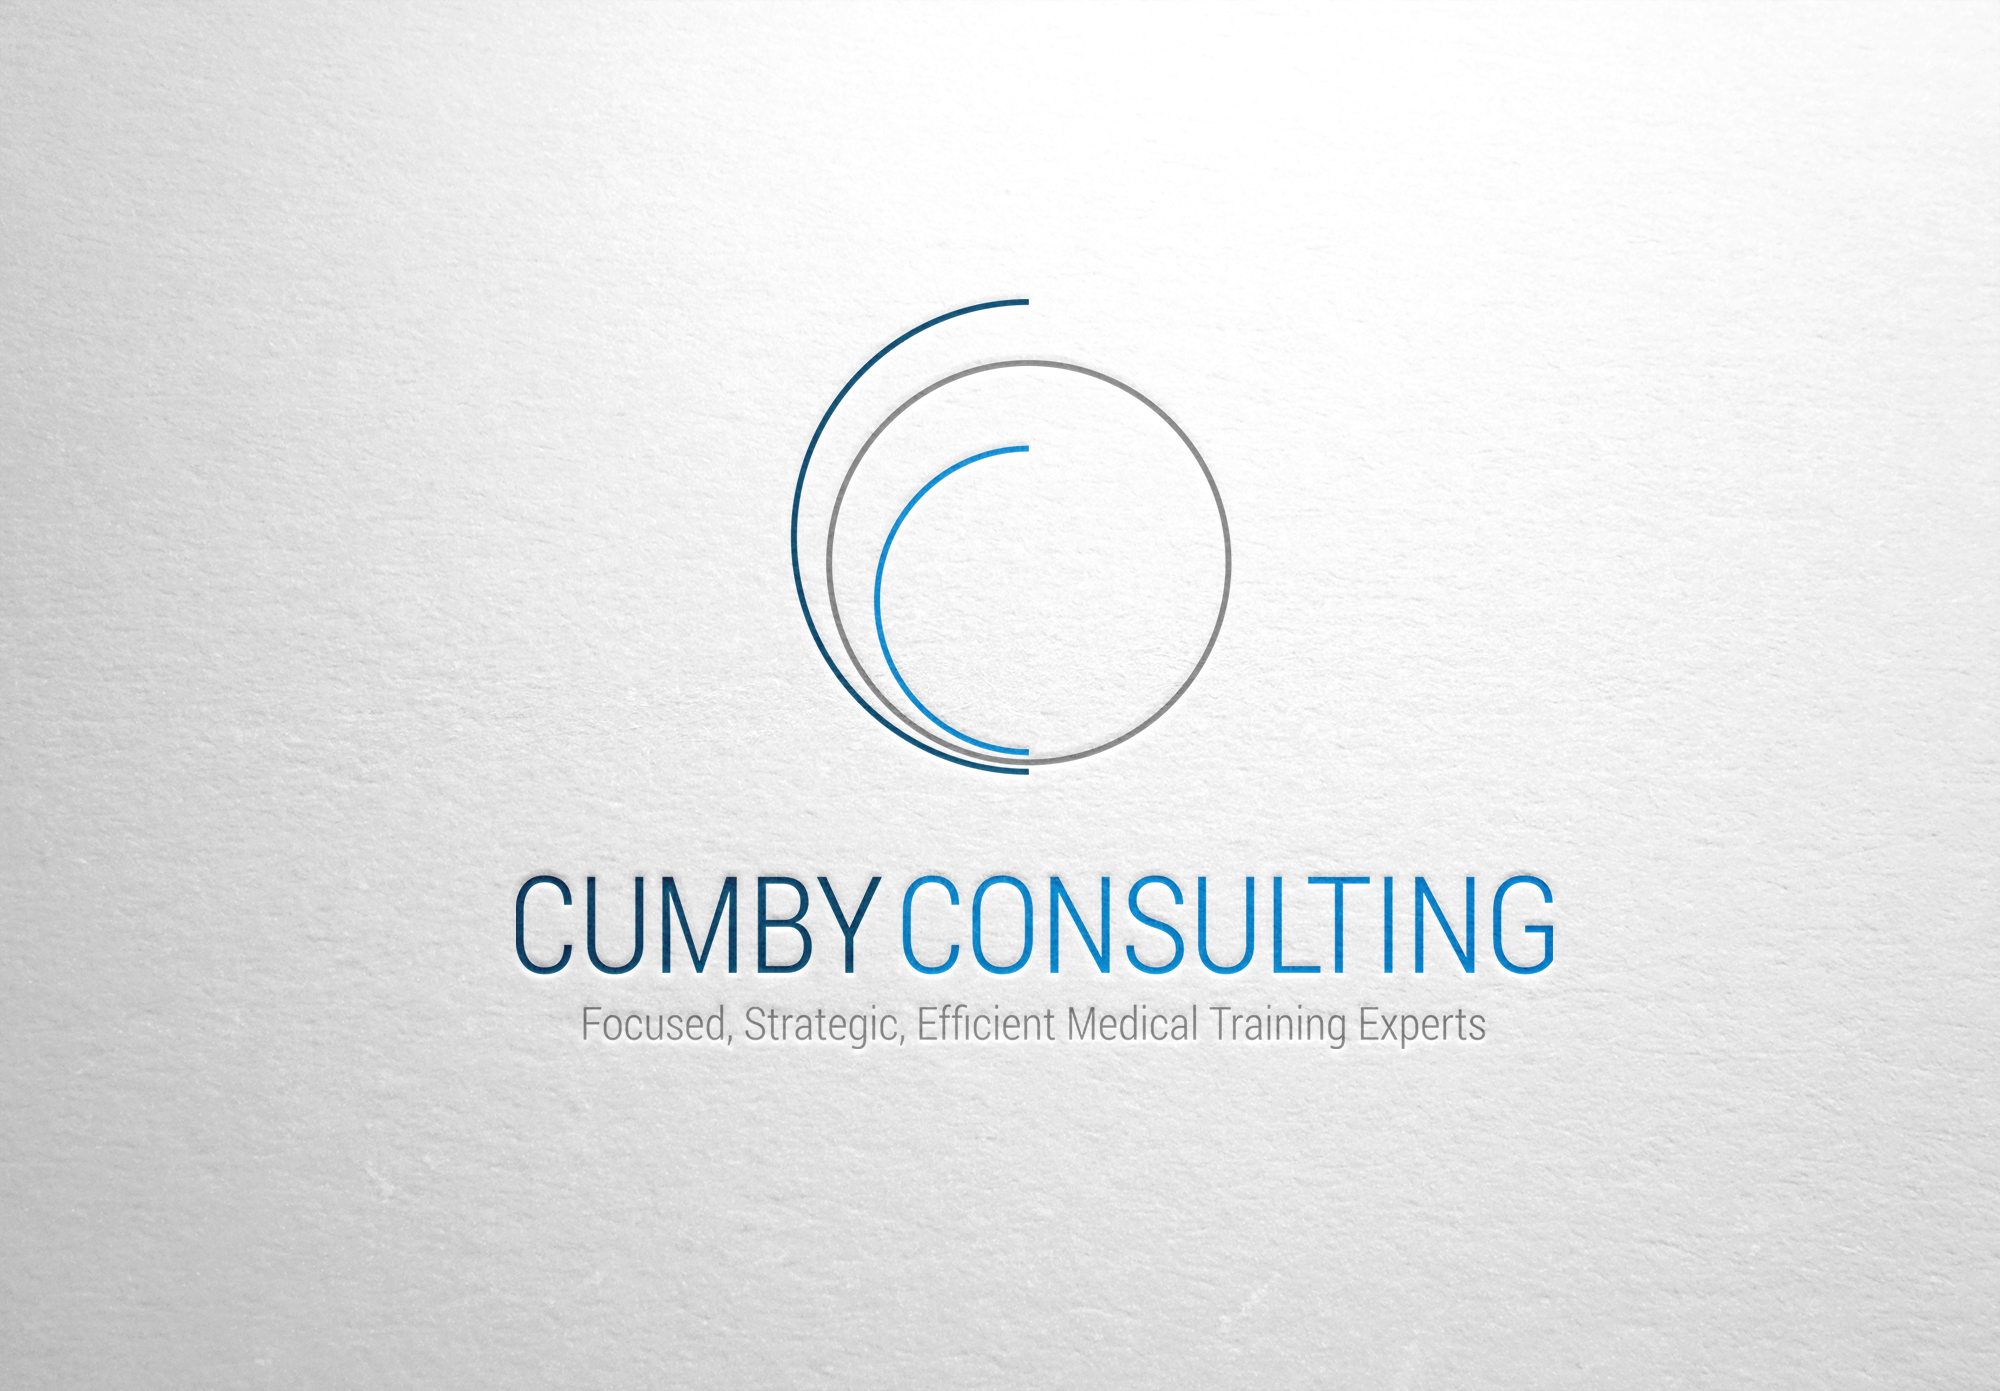 Create a Logo for a Medical Device Training Consulting Group